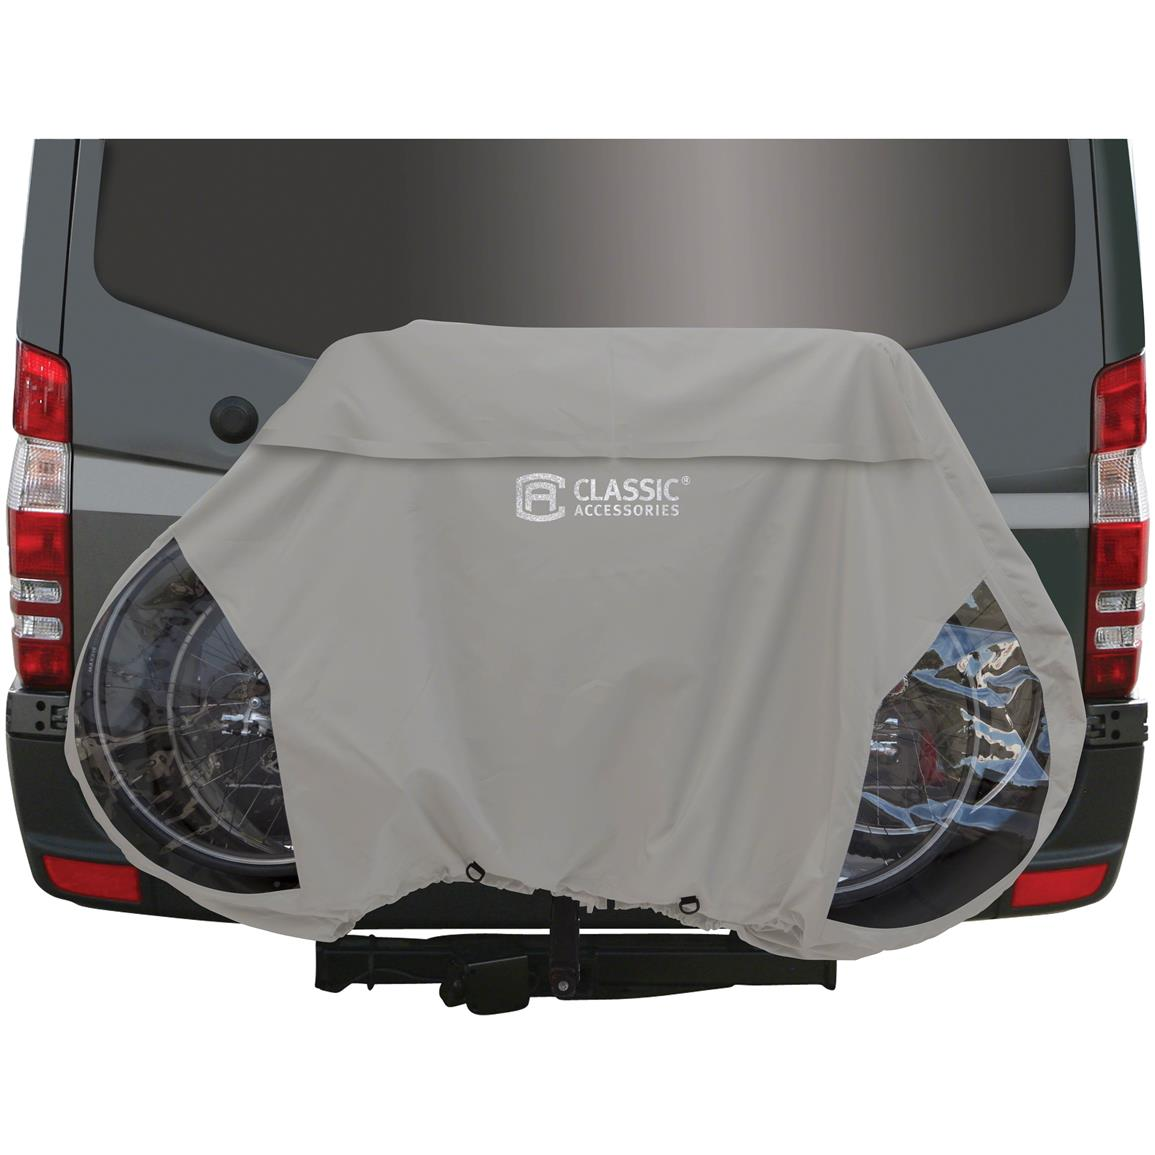 Classic Accessories™ RV Deluxe Bike Cover